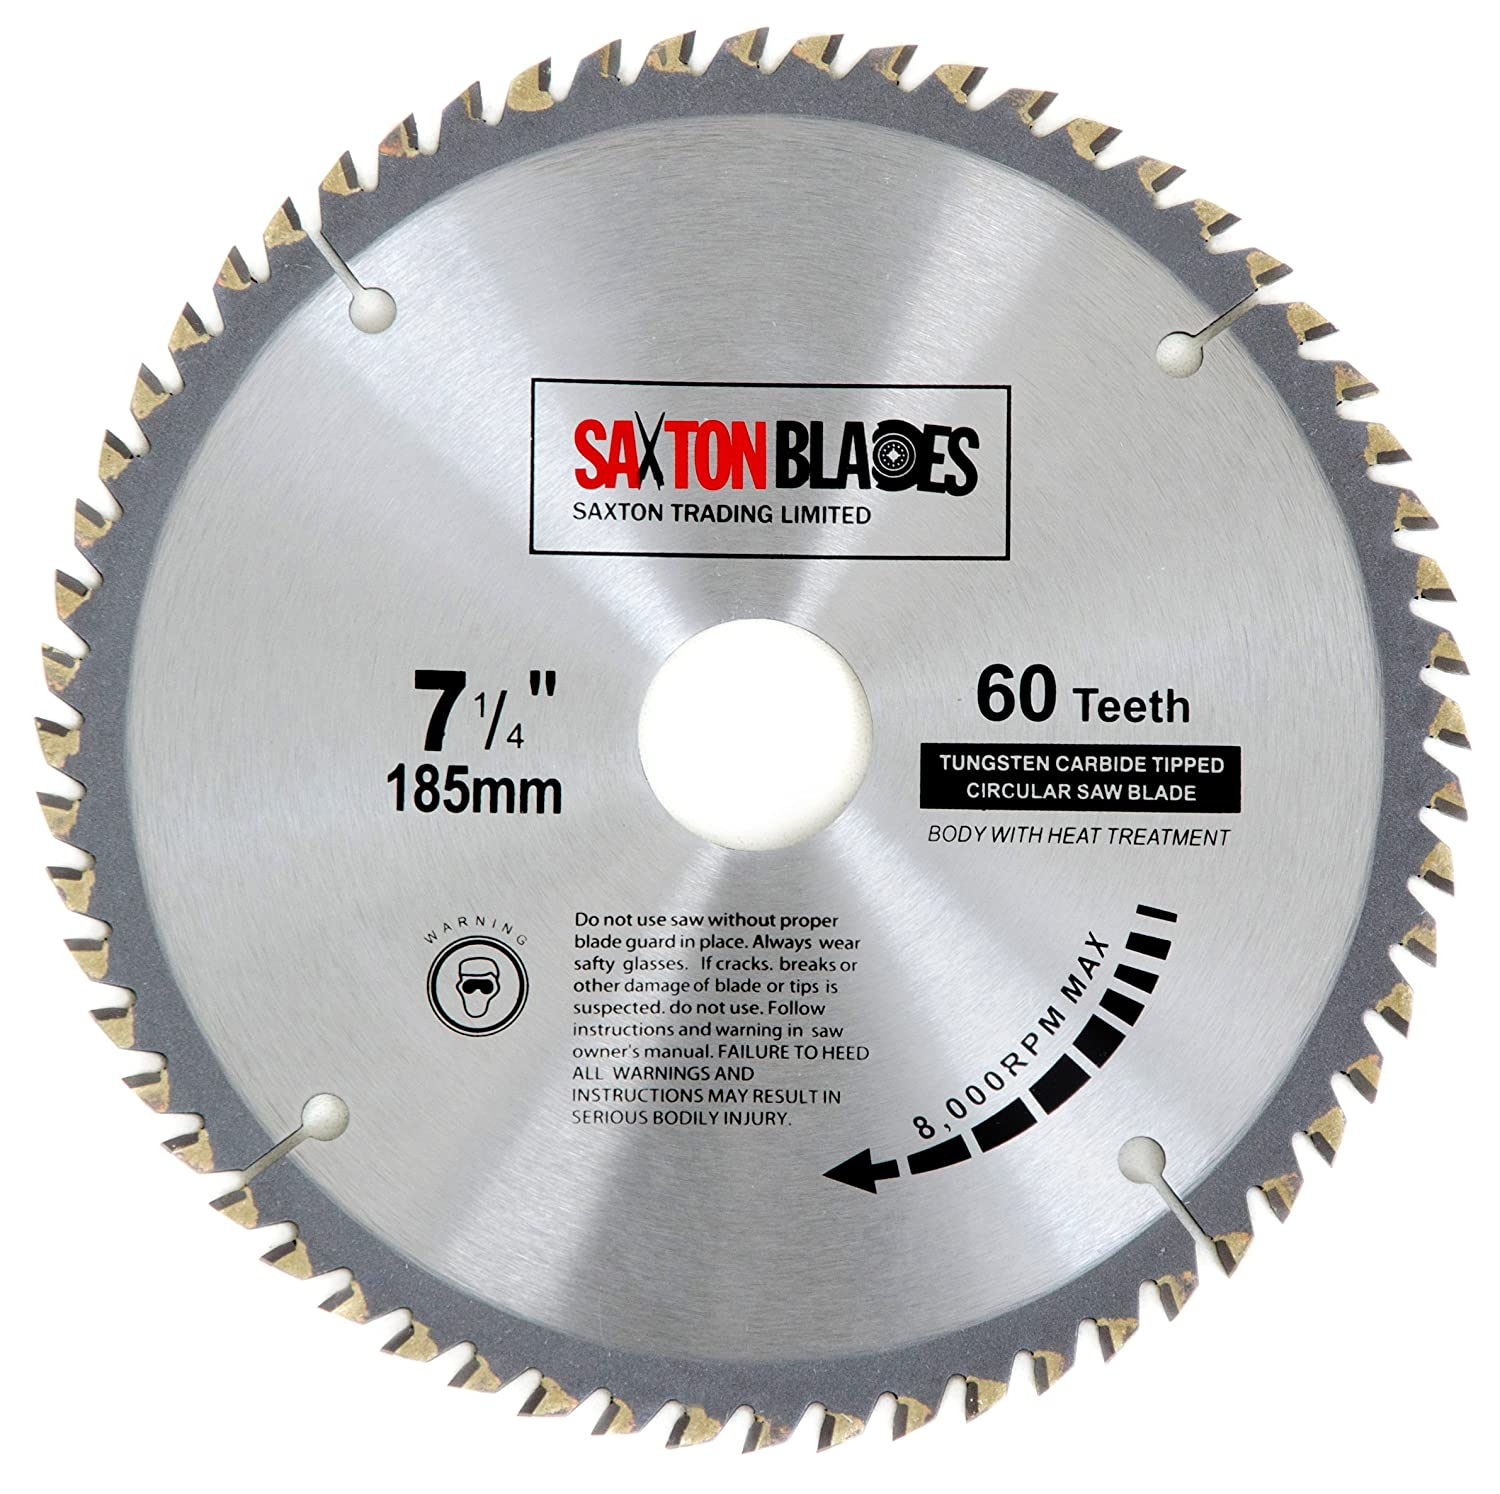 Tct18560t saxton tct circular wood saw blade 185mm x 30mm x bore x tct18560t saxton tct circular wood saw blade 185mm x 30mm x bore x 60t for bosch makita dewalt fits 190mm saws amazon diy tools greentooth Choice Image